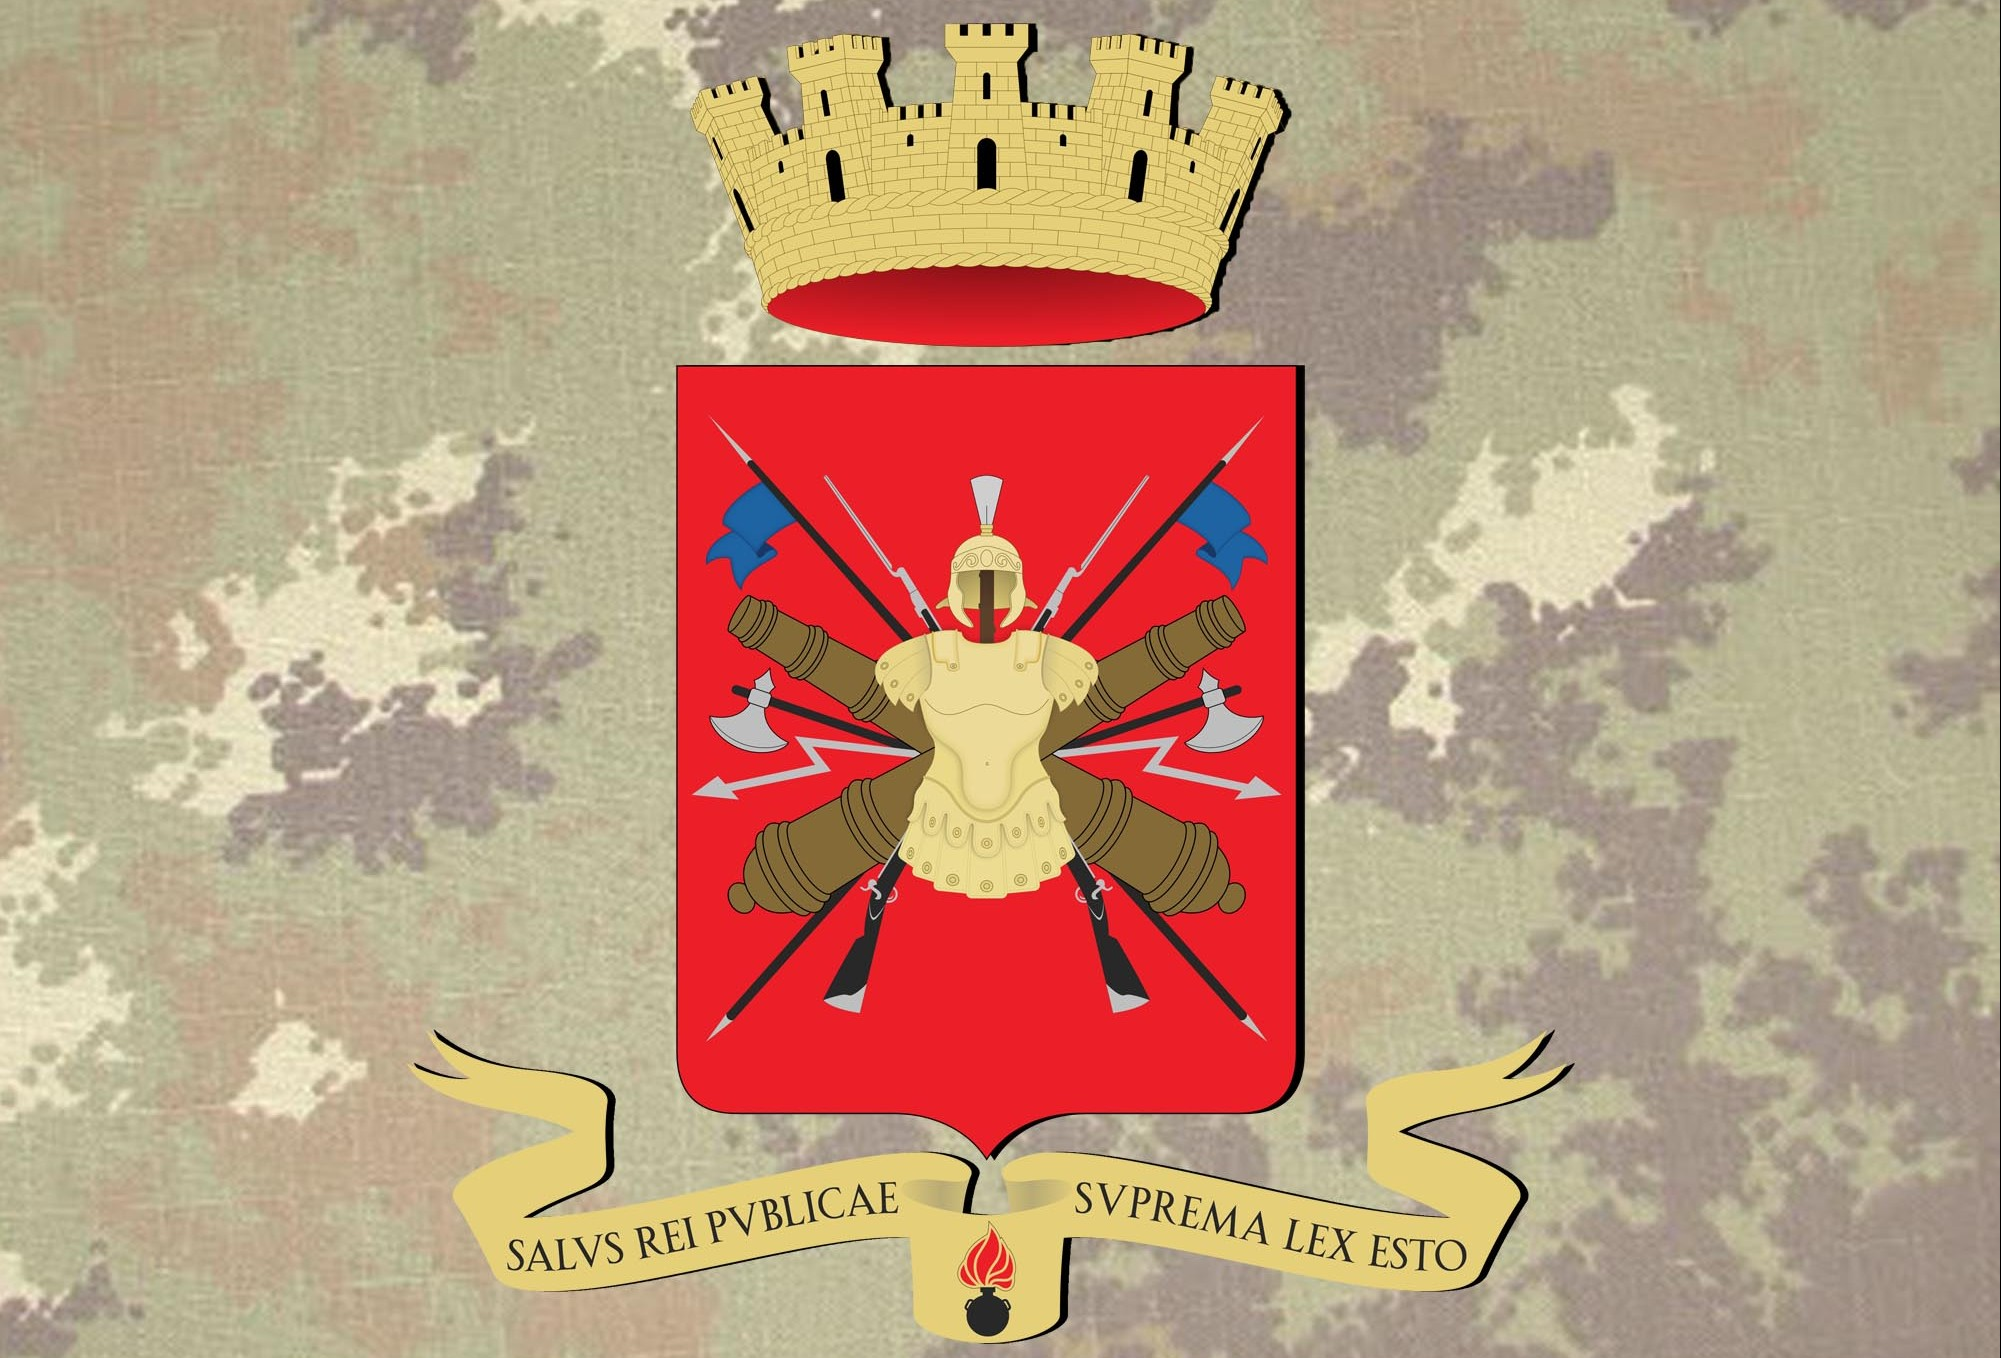 4th May - 155th Anniversary of the Italian Army